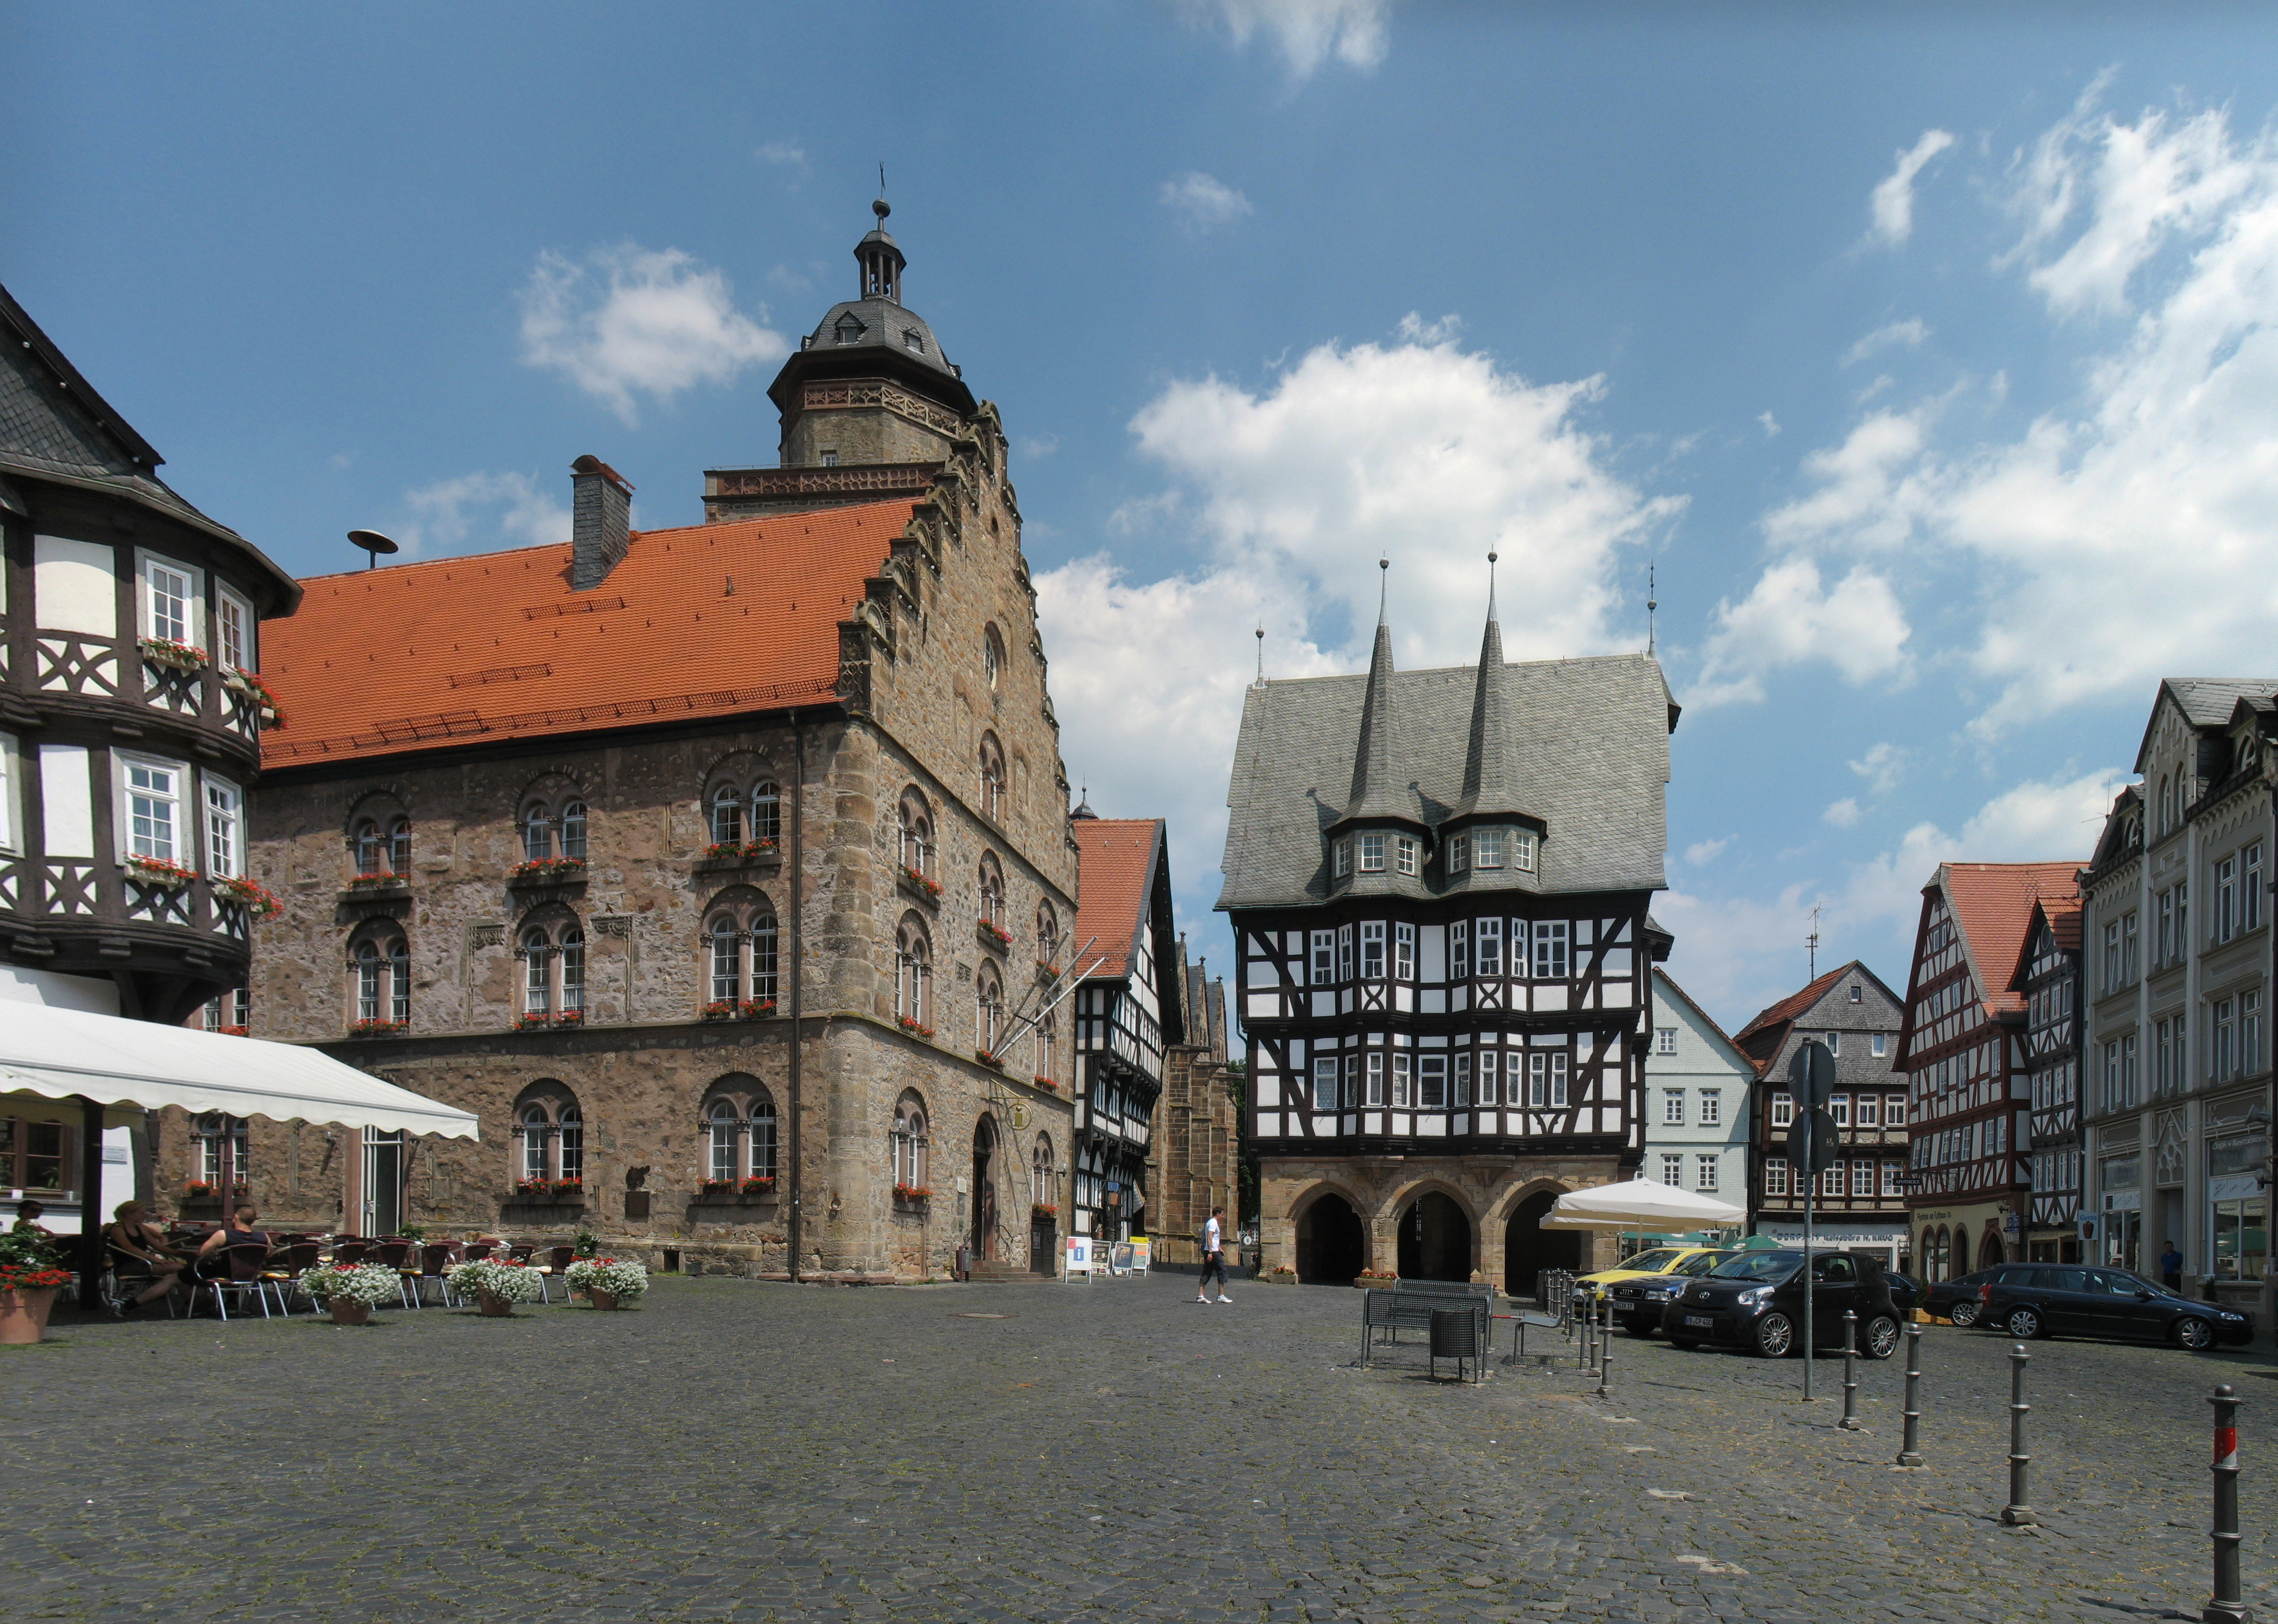 Alsfeld Germany  city photos gallery : Alsfeld04 2010 07 03 Alsfeld, Germany